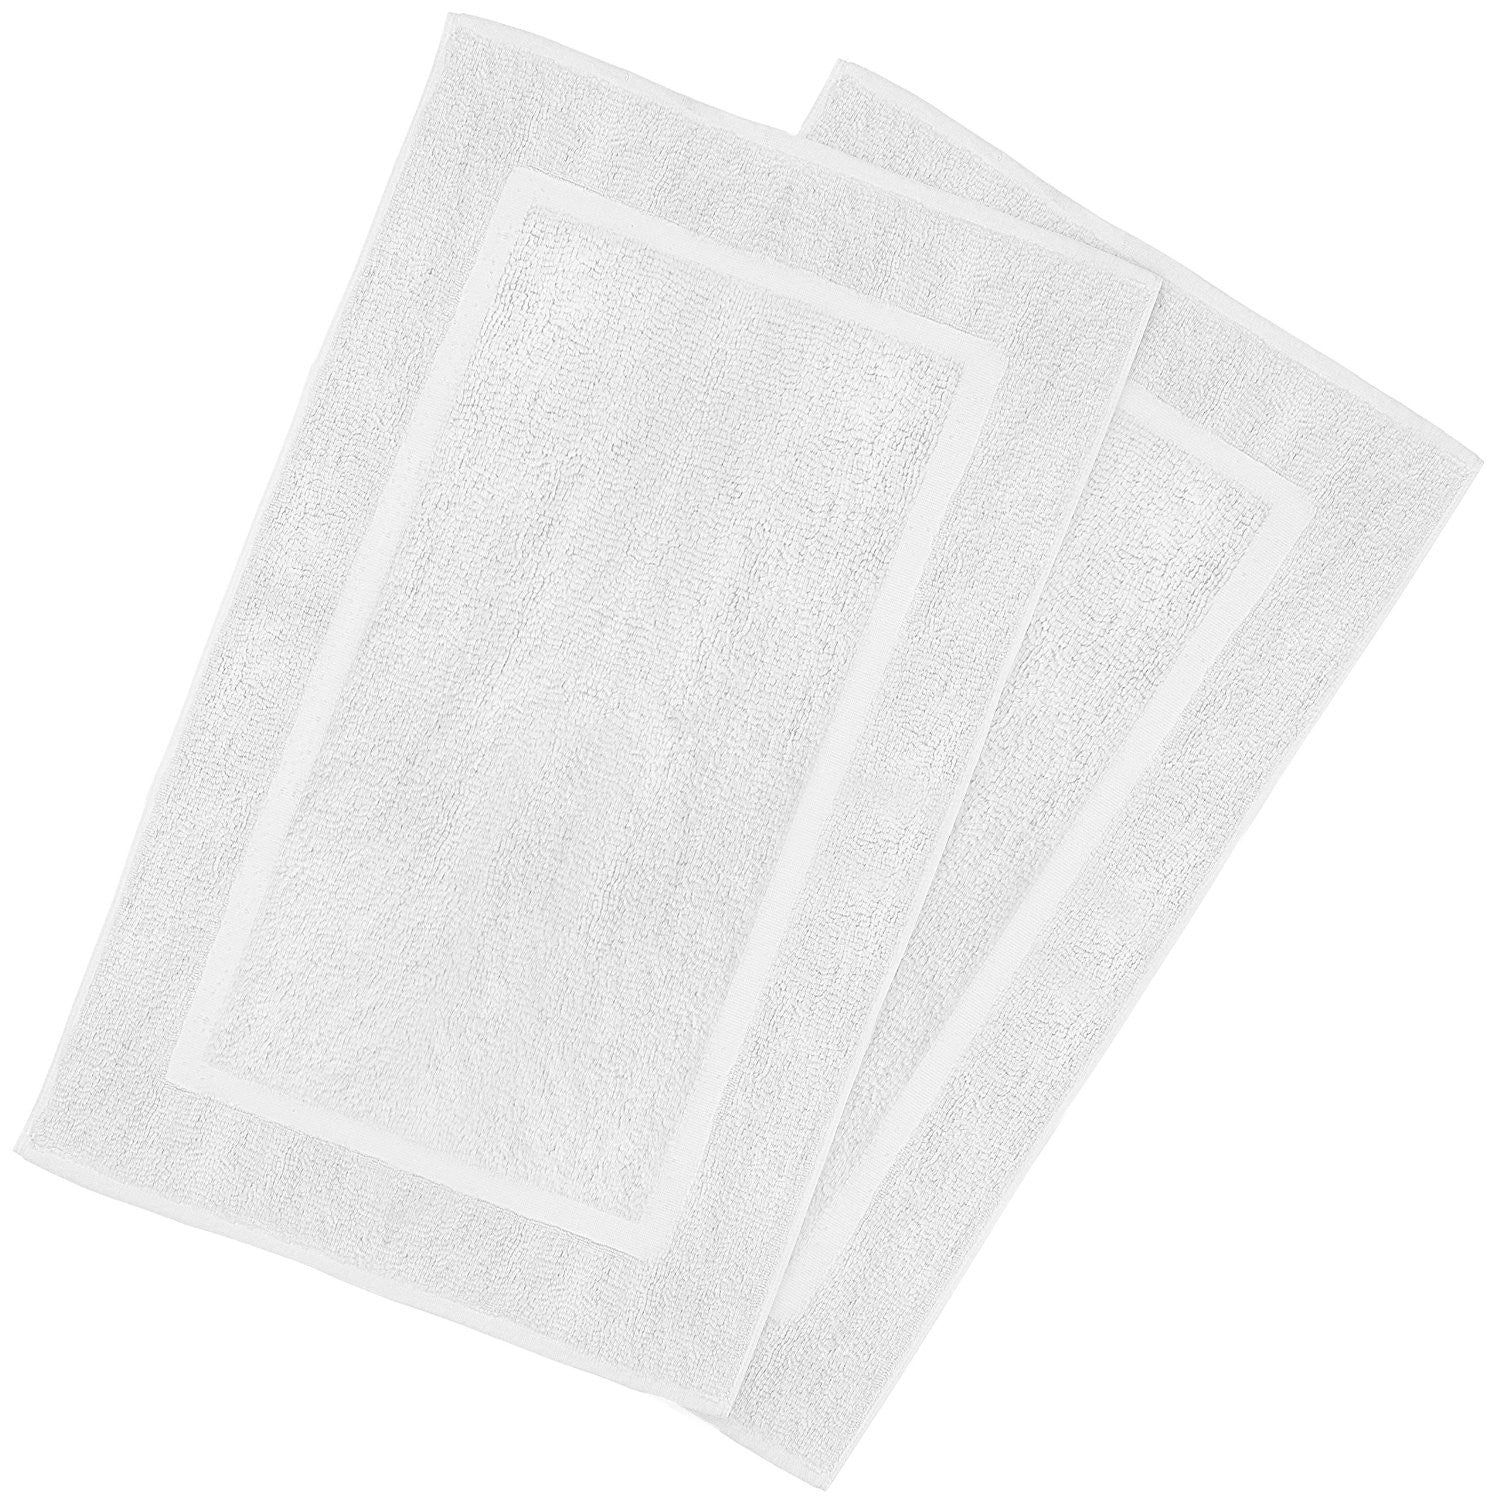 Ringspun Cotton Floor Mat, White, 2-Pack